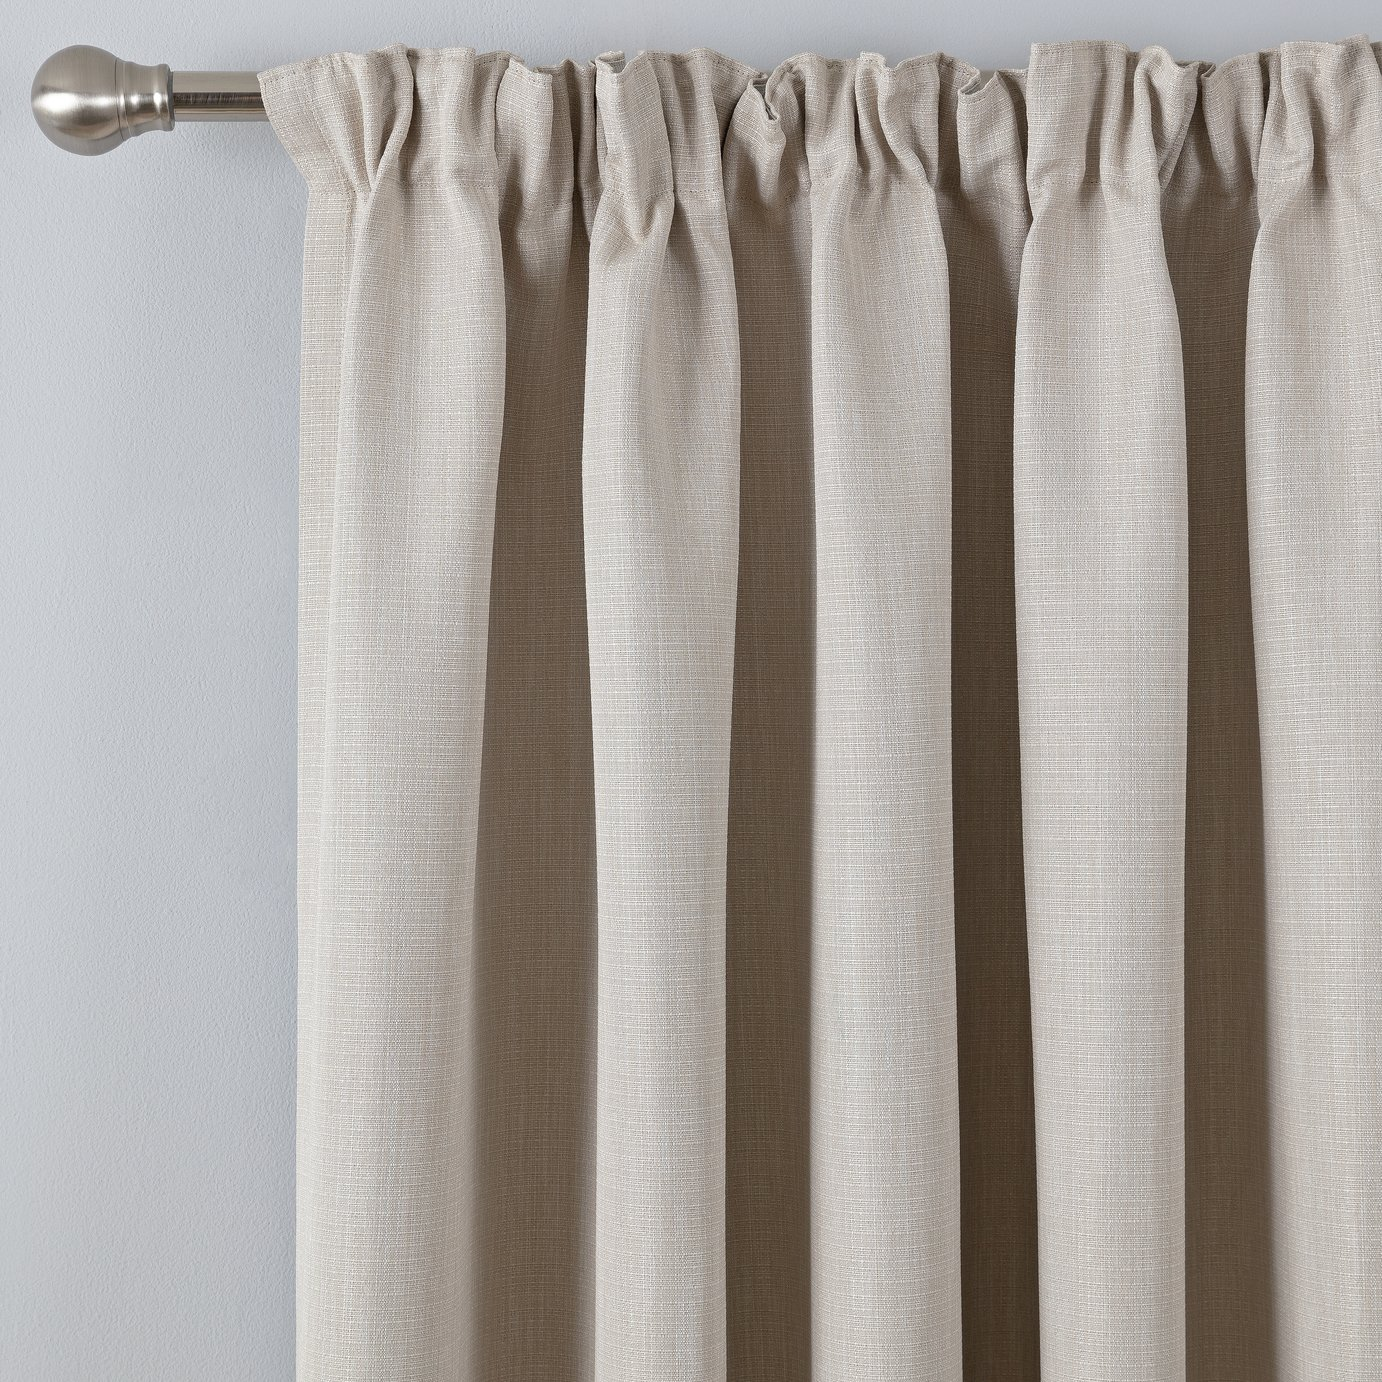 Argos Home Thermal Blackout Pencil Pleat Curtains - Natural